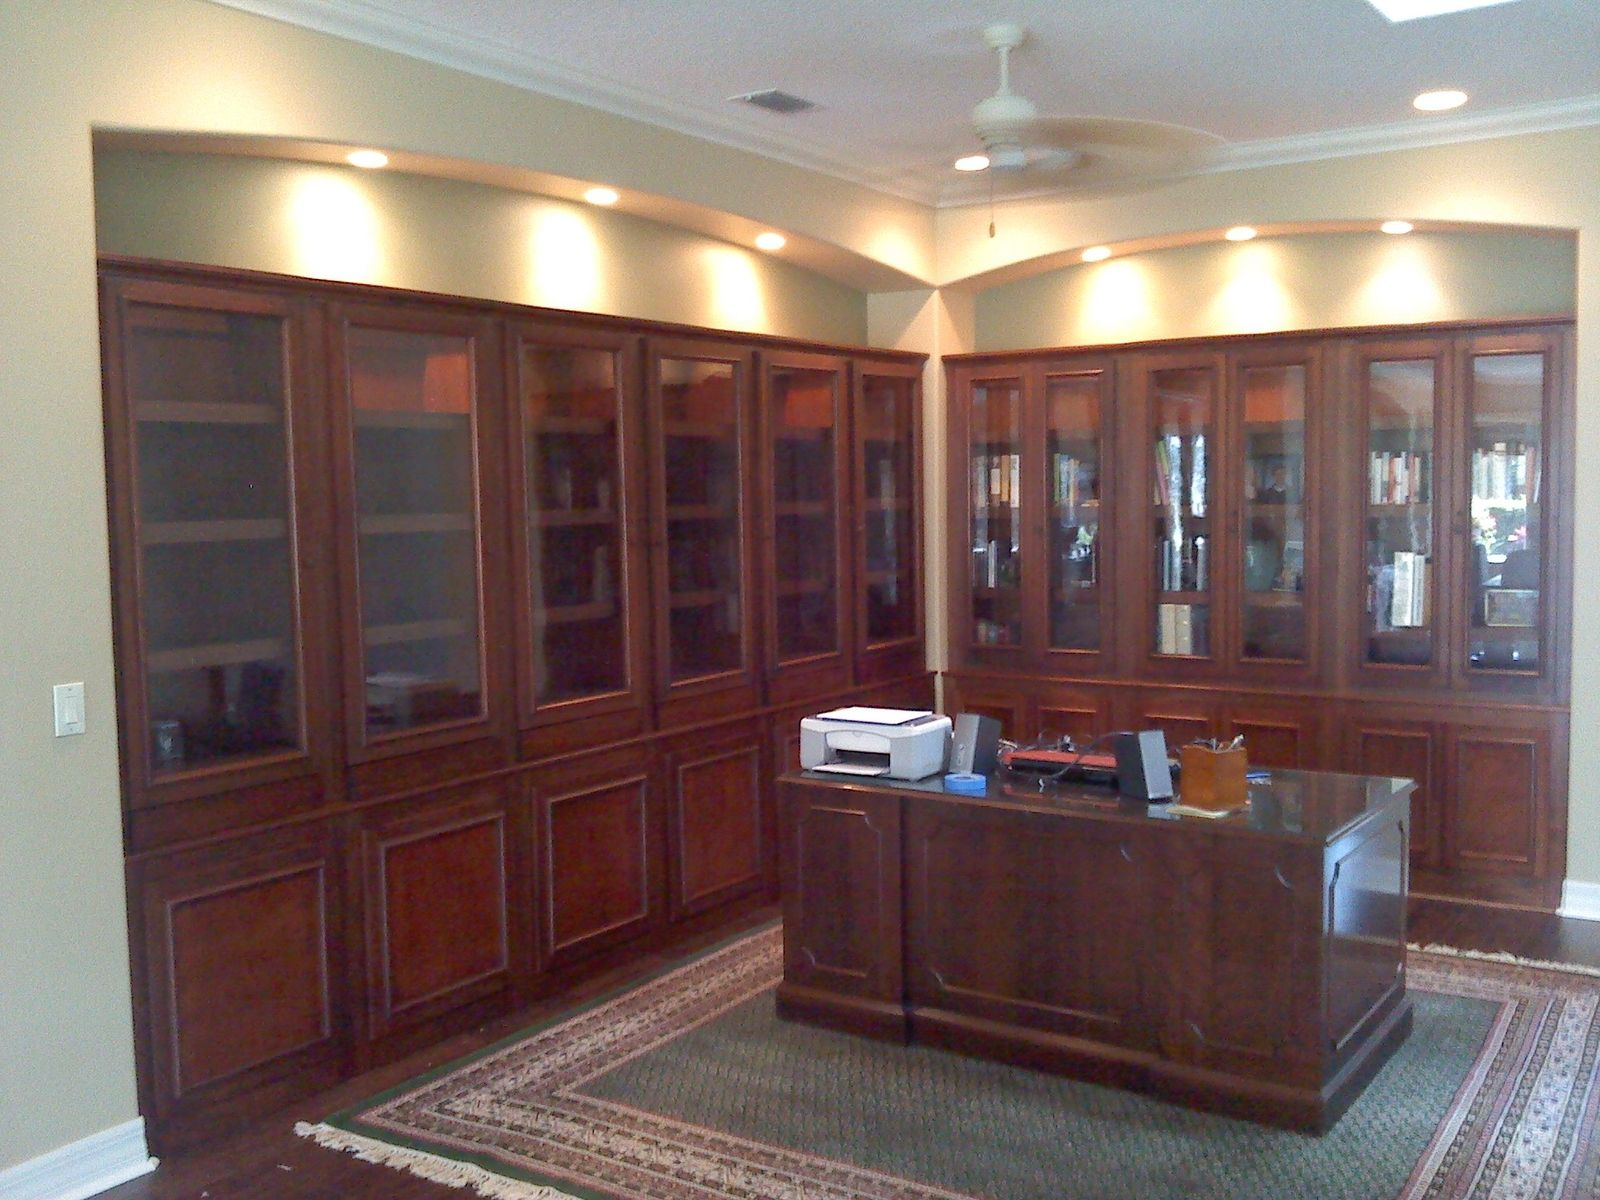 library office furniture 1000 images about home office library on pinterest coffered ceilings bookcases and home antique home office furniture inspiring goodly